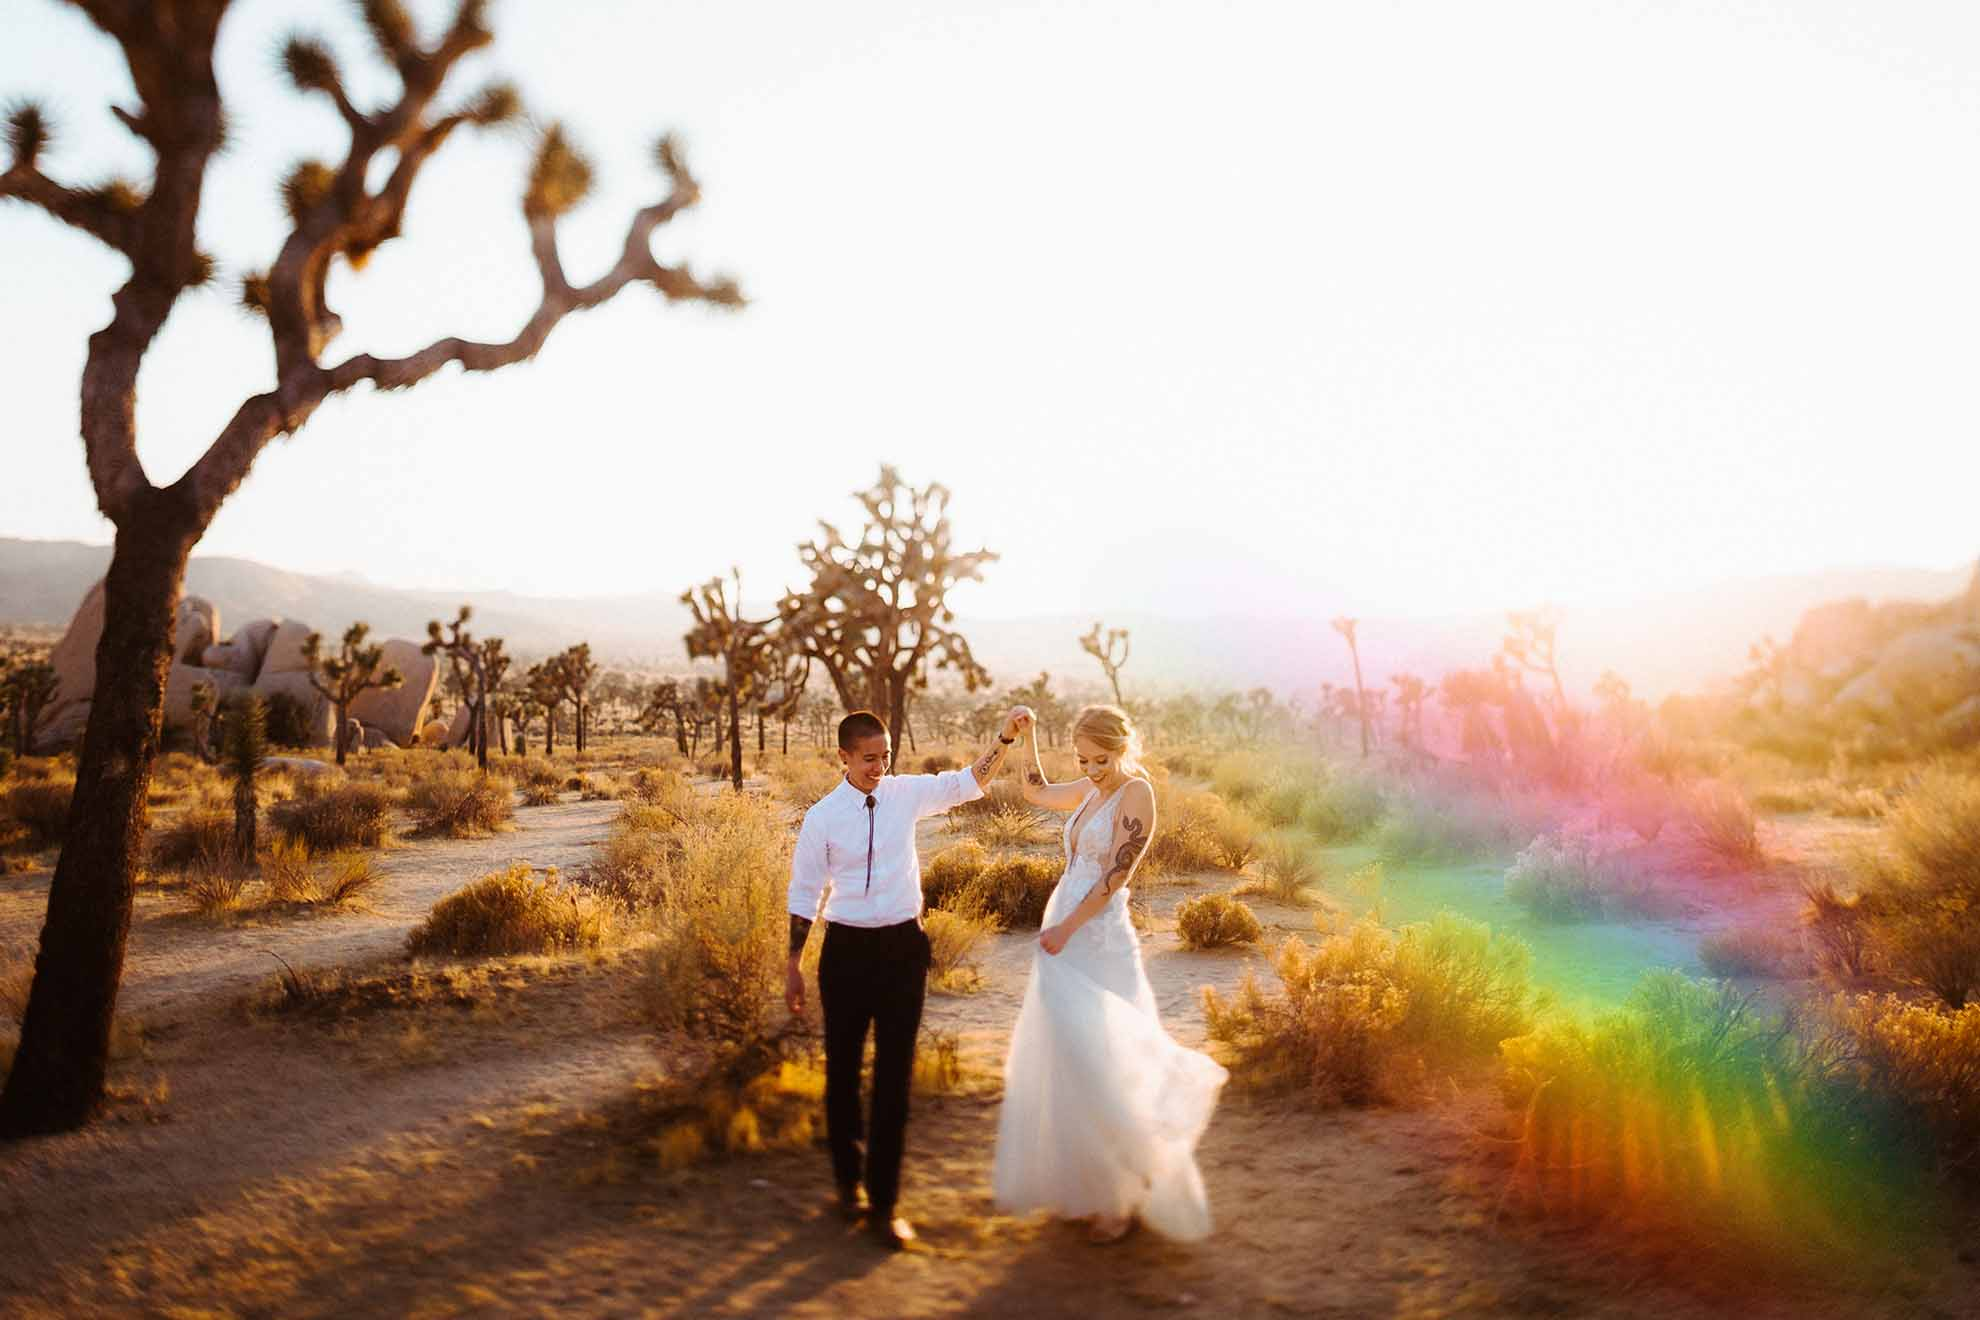 DWH 002 - The Hendrys lesbian gay same-sex queer wedding elopement Los Angeles California USA Dancing With Her (10)